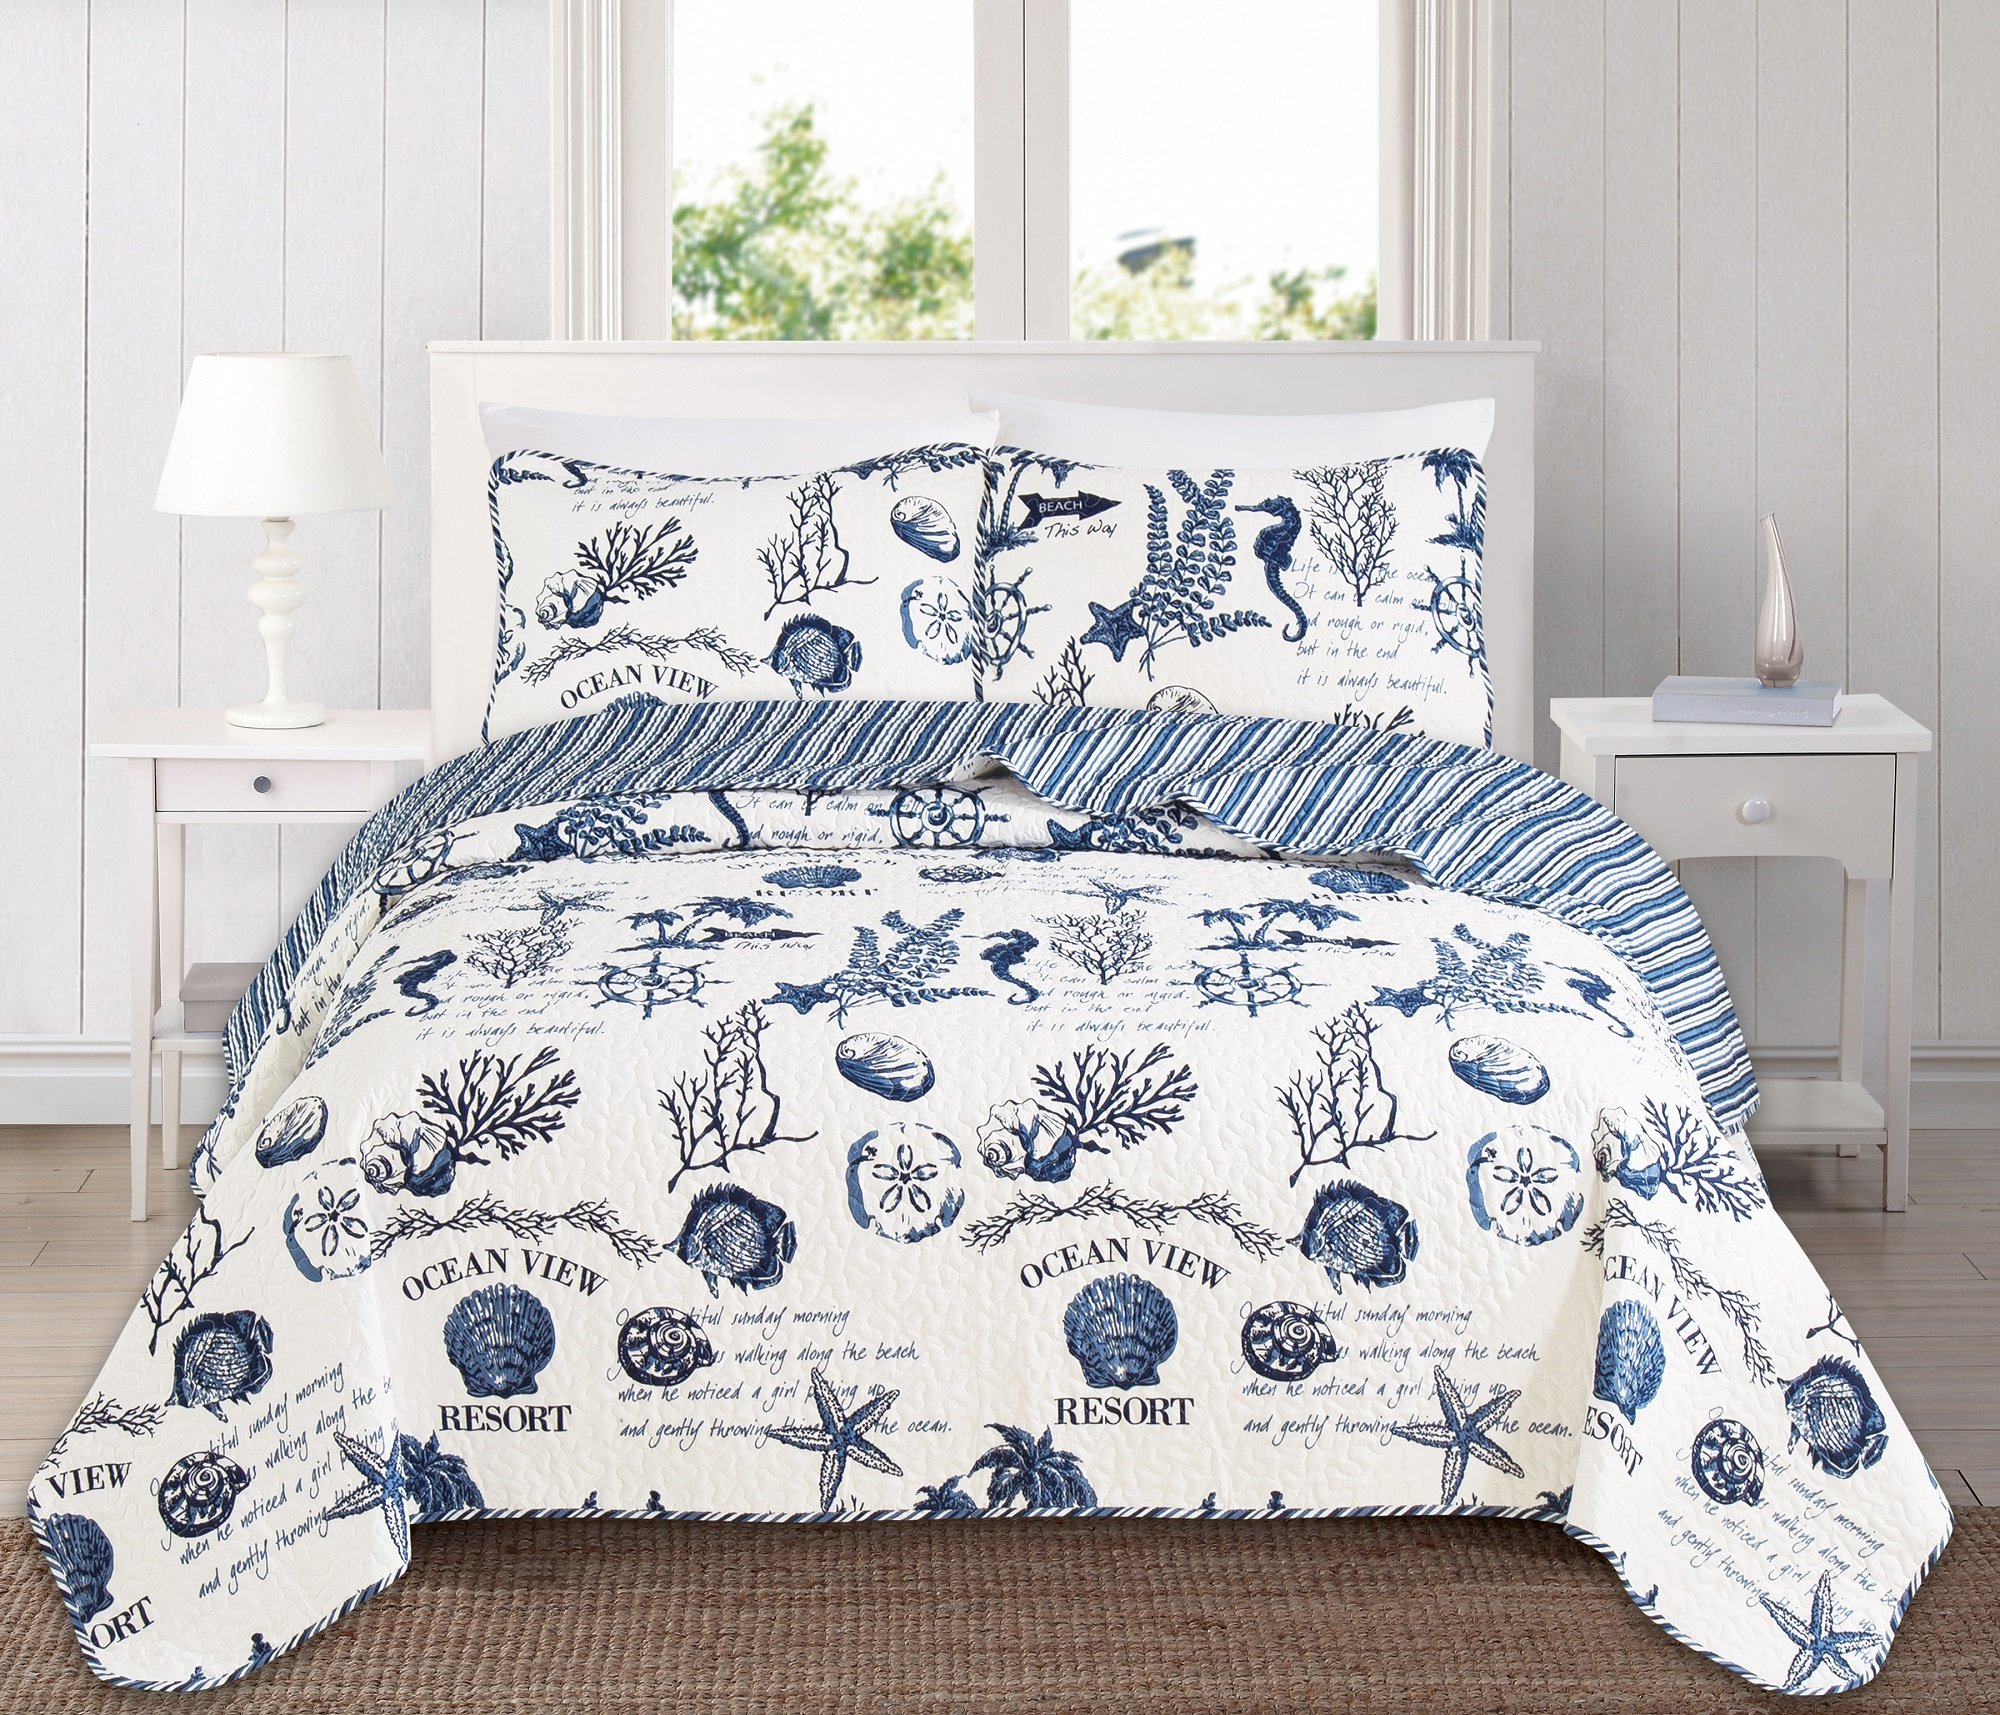 Great Bay Home 3 Piece Quilt Set with Shams. Soft All-Season Microfiber Bedspread Featuring Attractive Seascape Images. Machine Washable. The Catalina Collection By Brand. (Full/Queen)